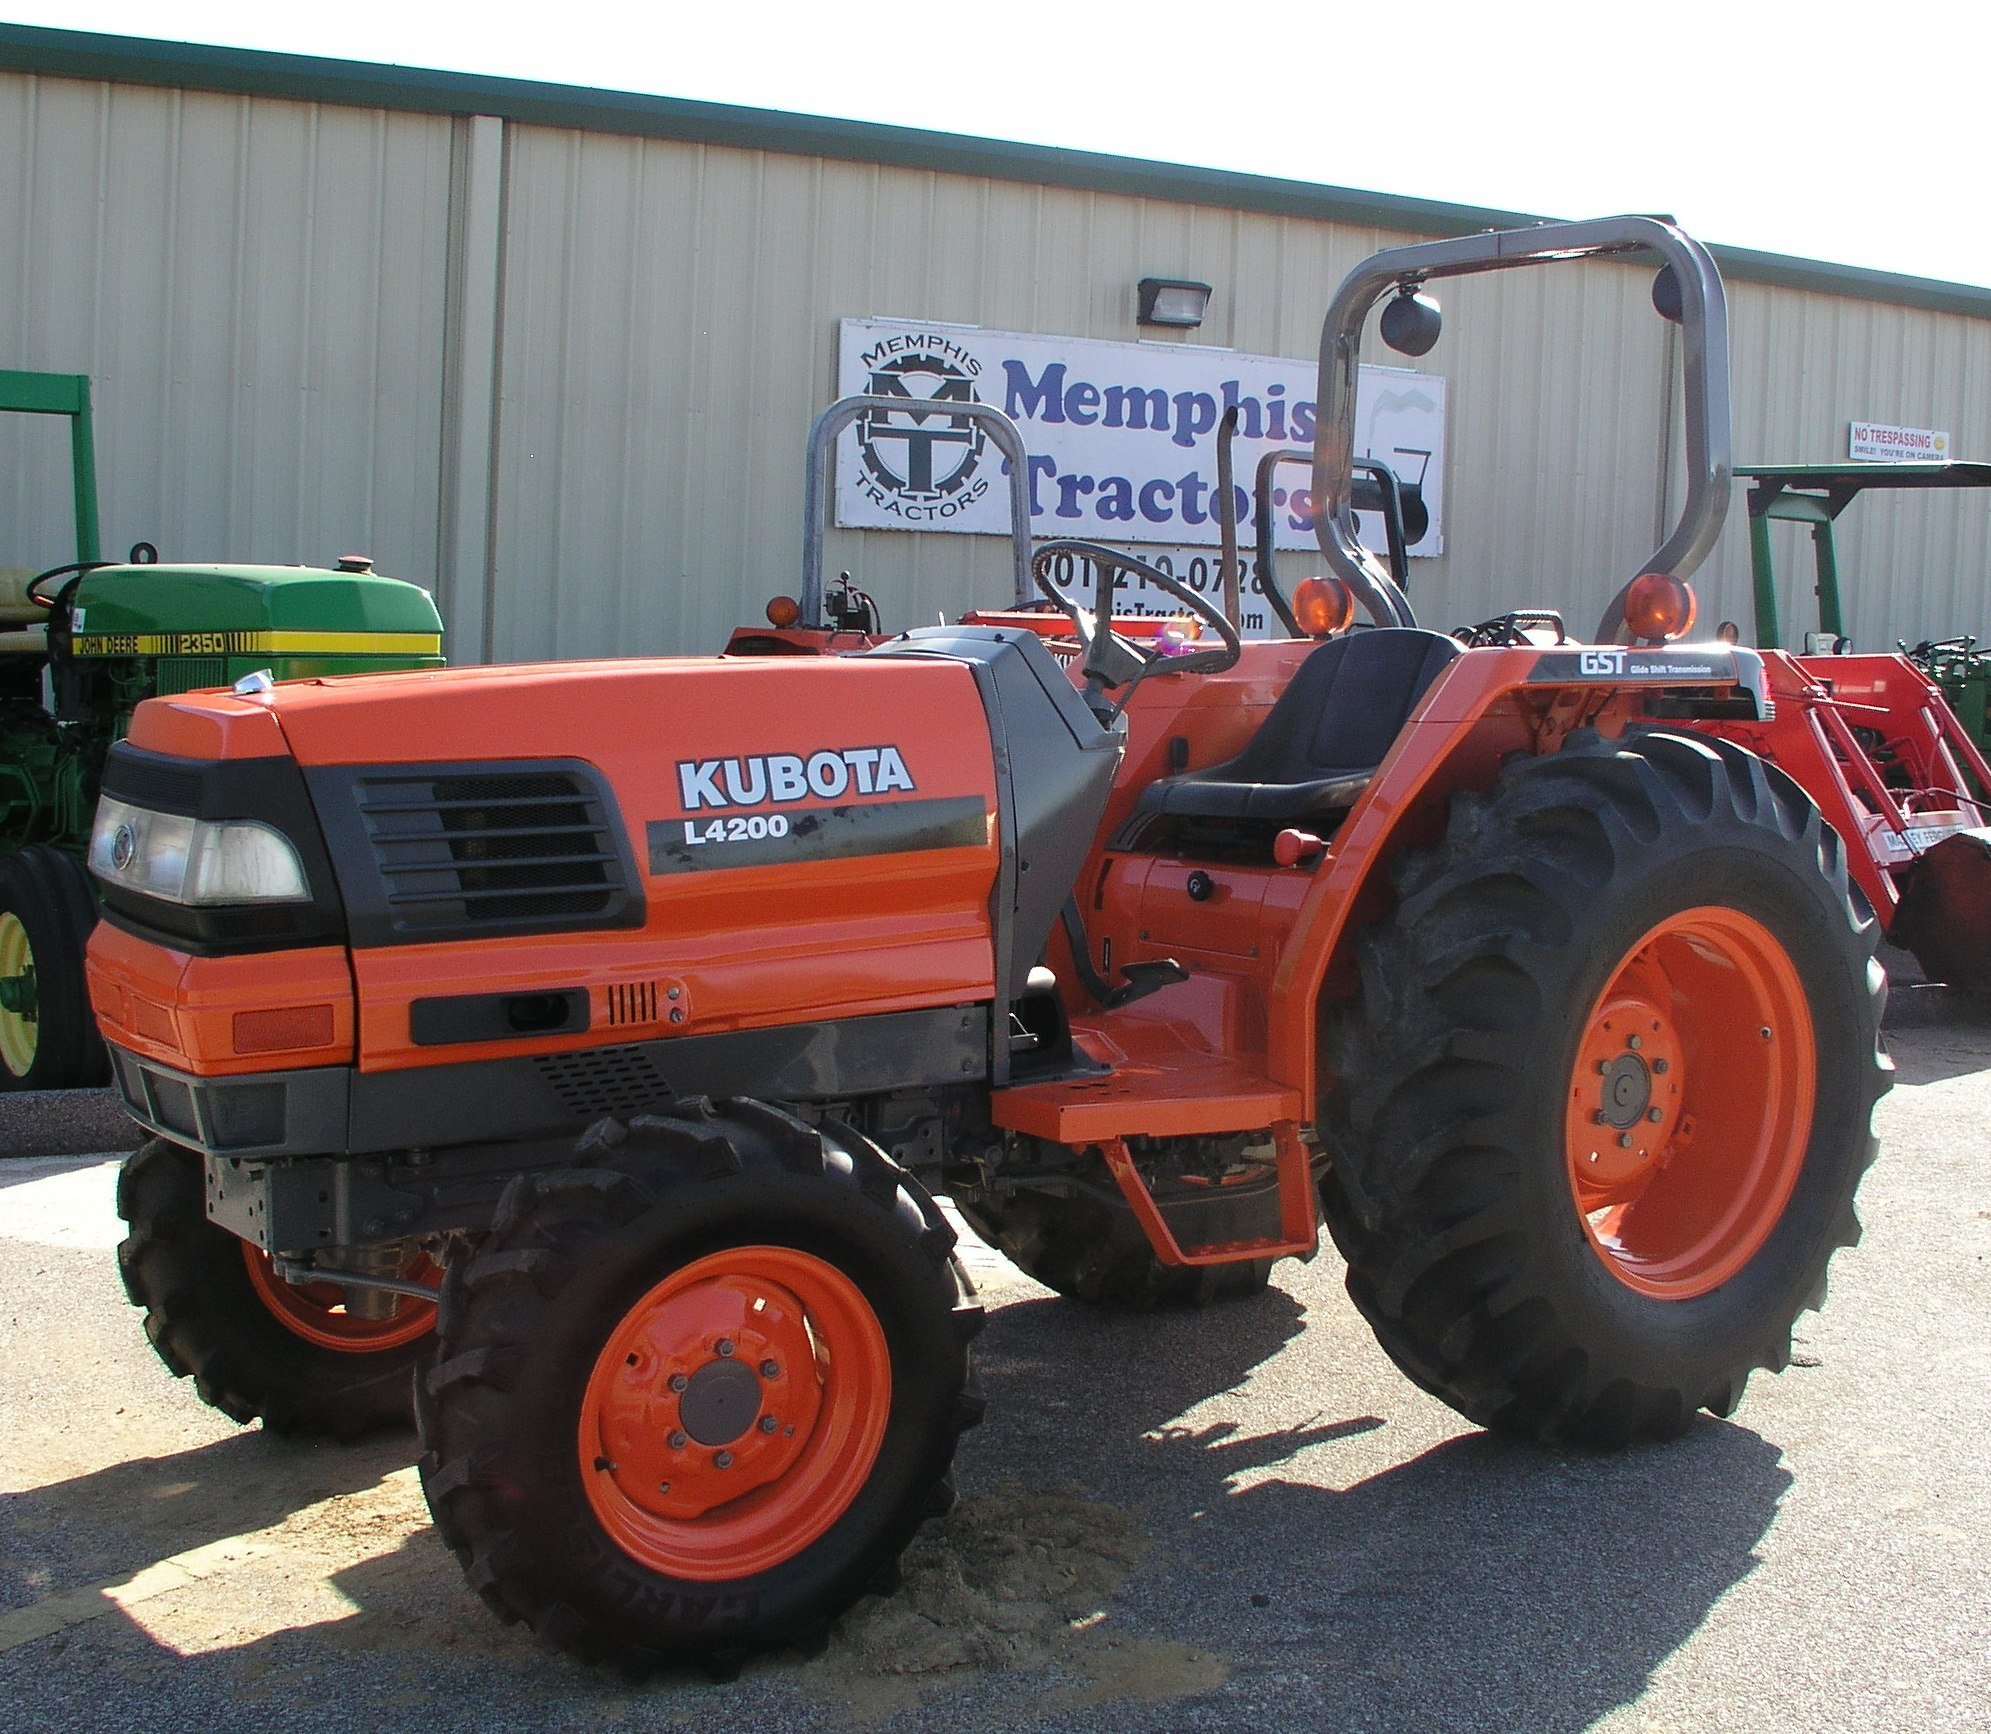 Superb Kubota L4200 Tractor Service Manual Download Kubota Manual Wiring Digital Resources Bemuashebarightsorg